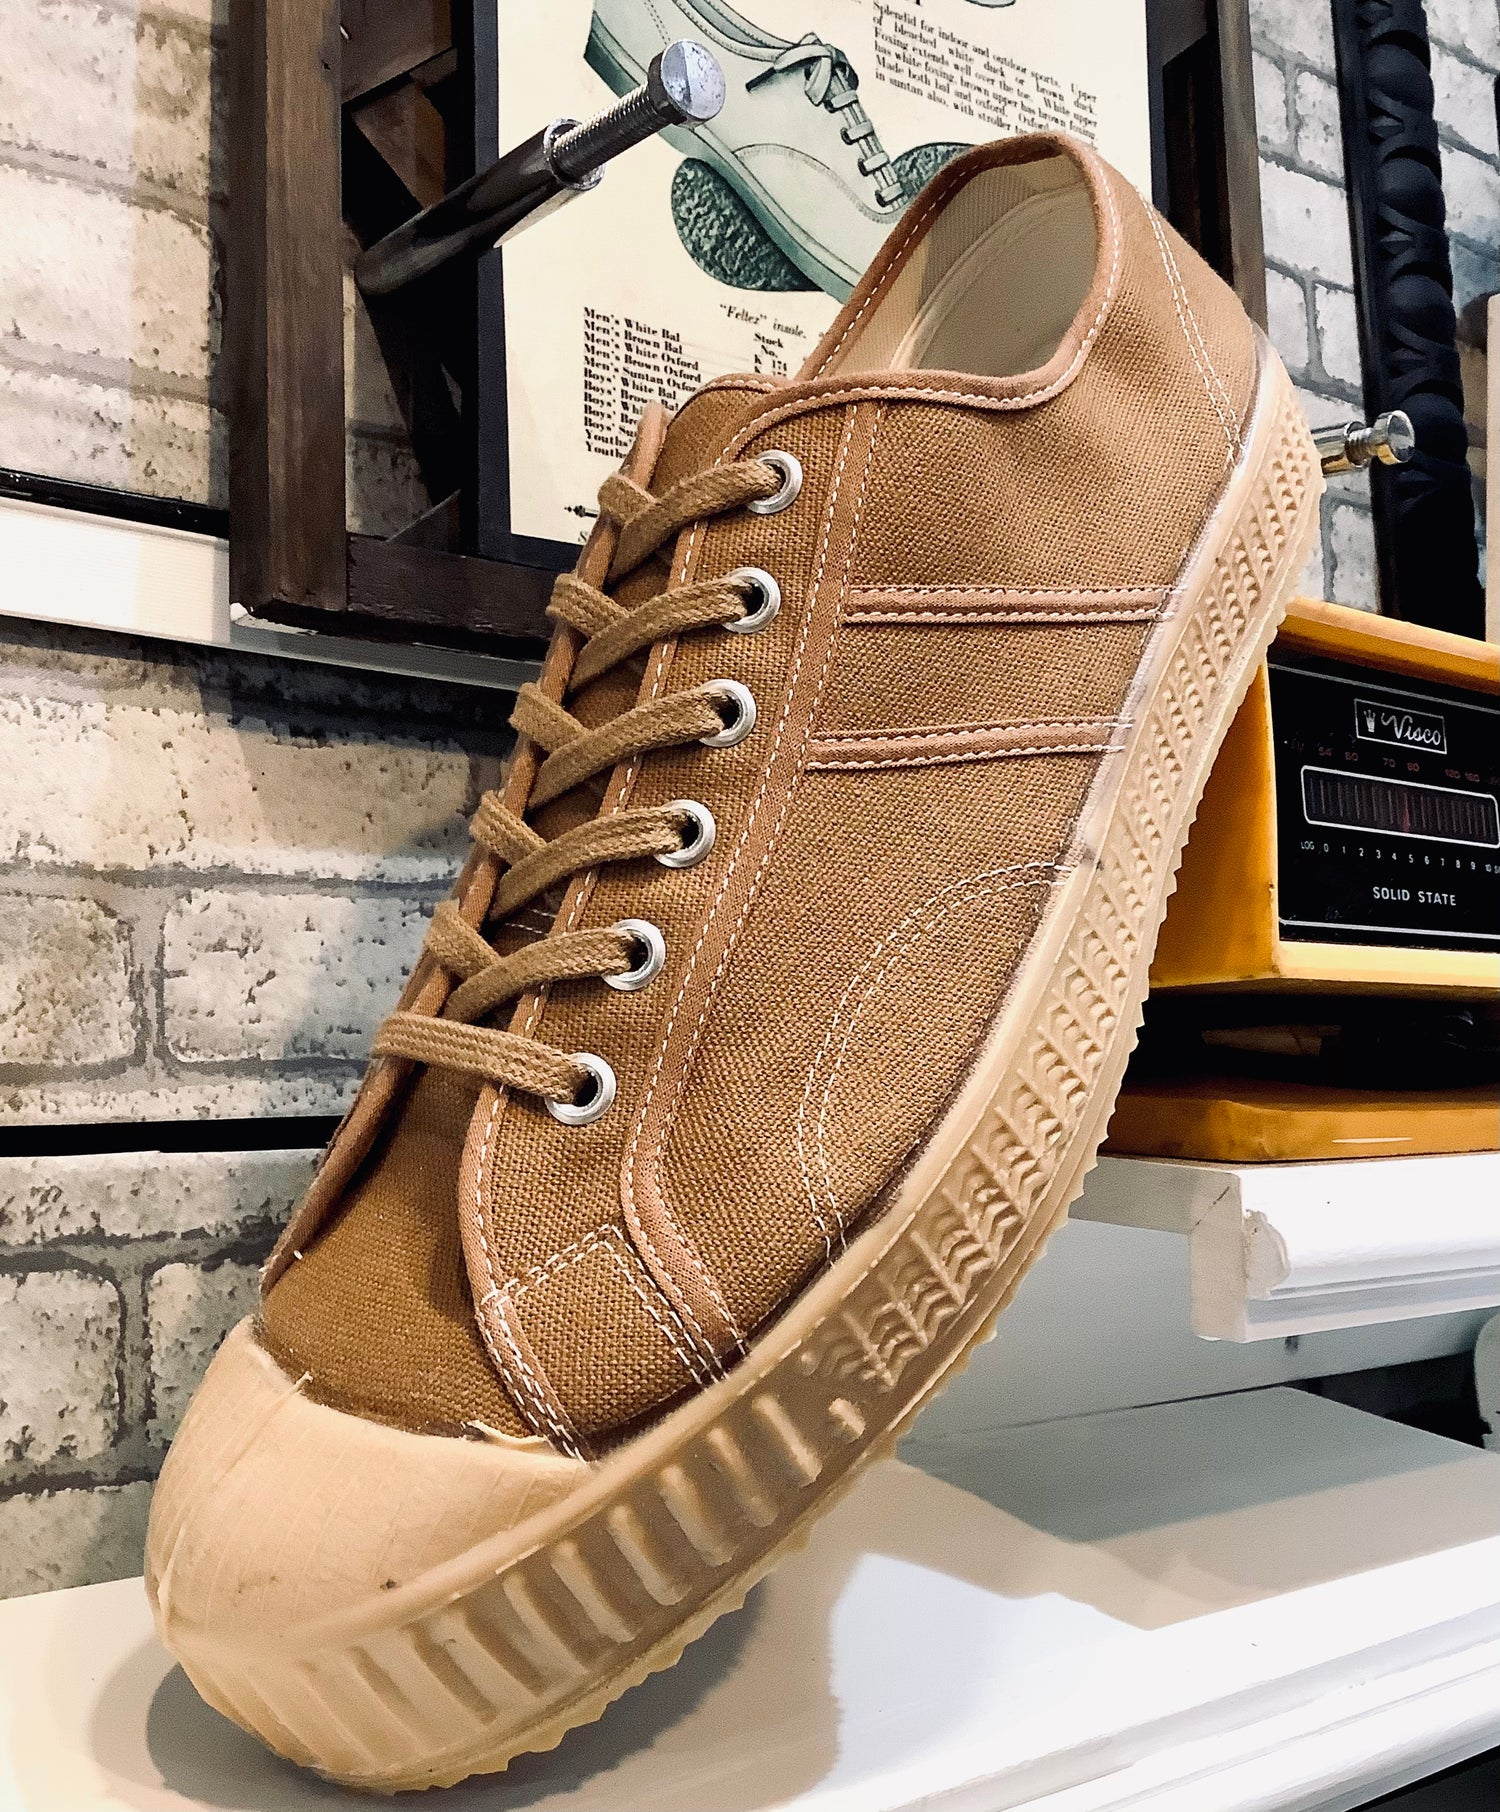 Image of VEGANCRAFT vintage lo top camel sneaker shoes made in Slovakia